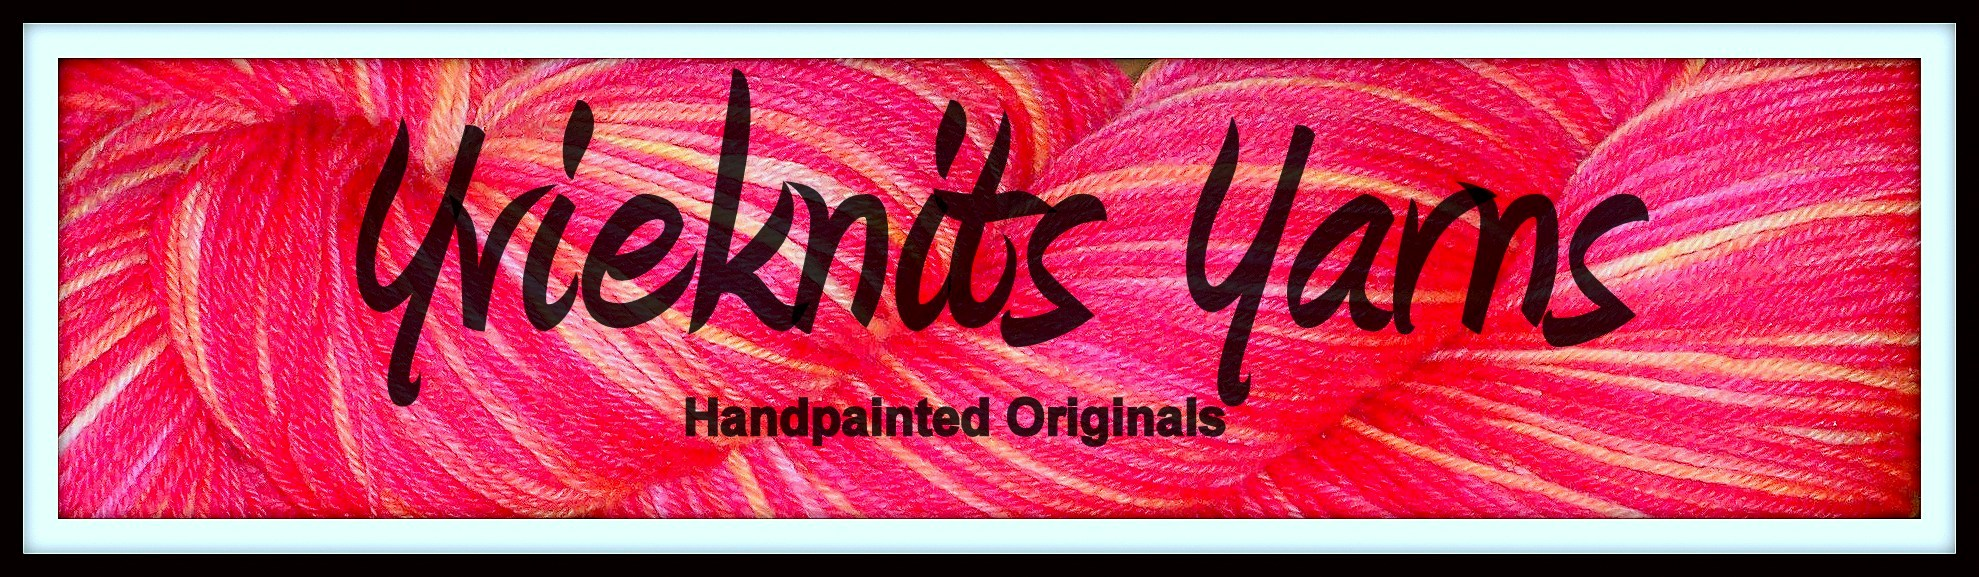 Yvieknits Yarns - Handpainted Originals